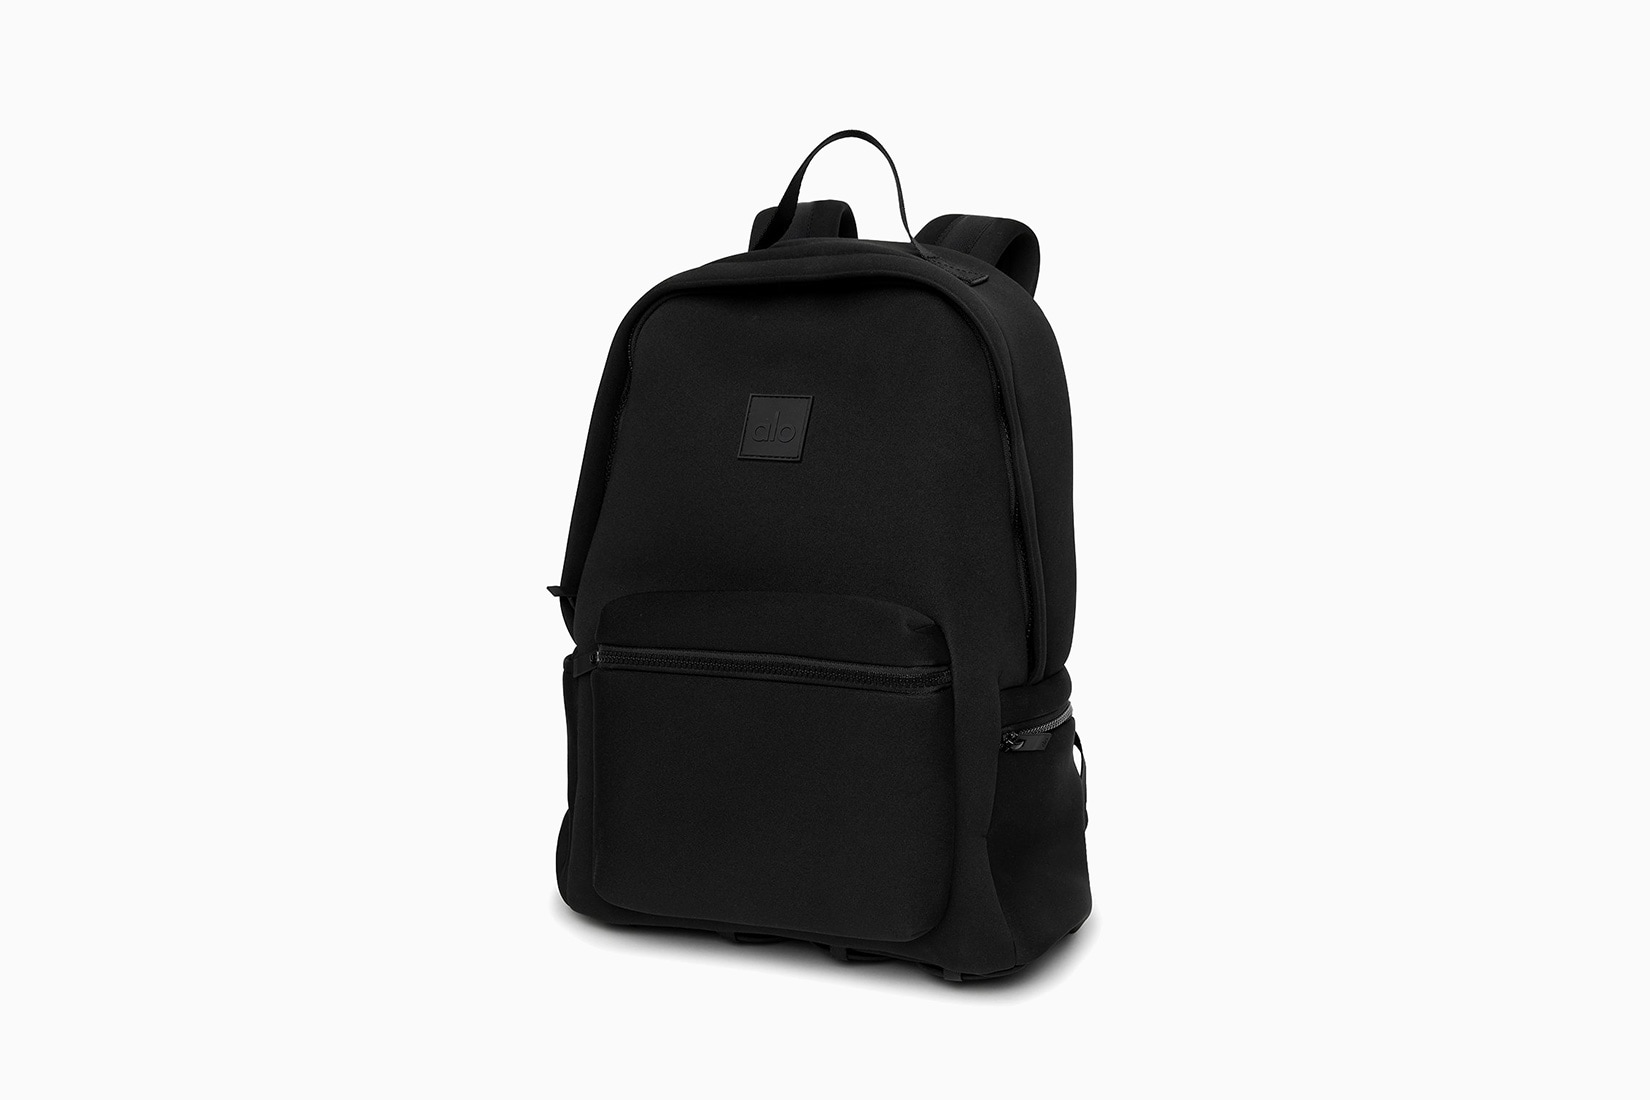 best women gym bag high-end alo yoga backpack - Luxe Digital